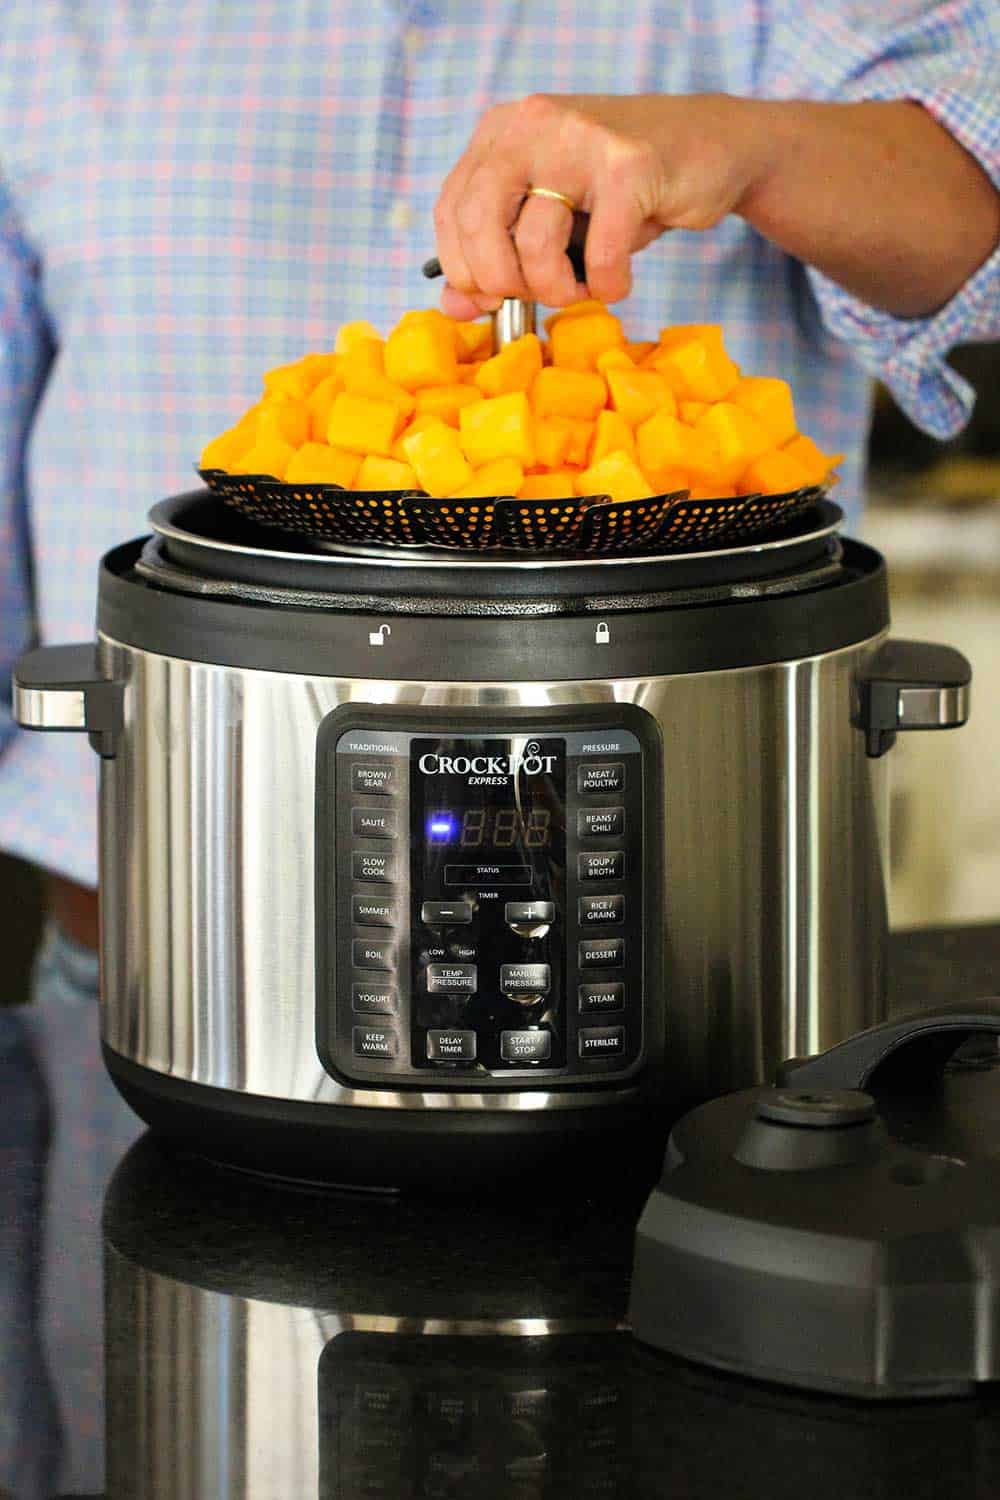 A hand lowering a steamer basket holding cut butternut squash into a 10 qt. pressure cooker.